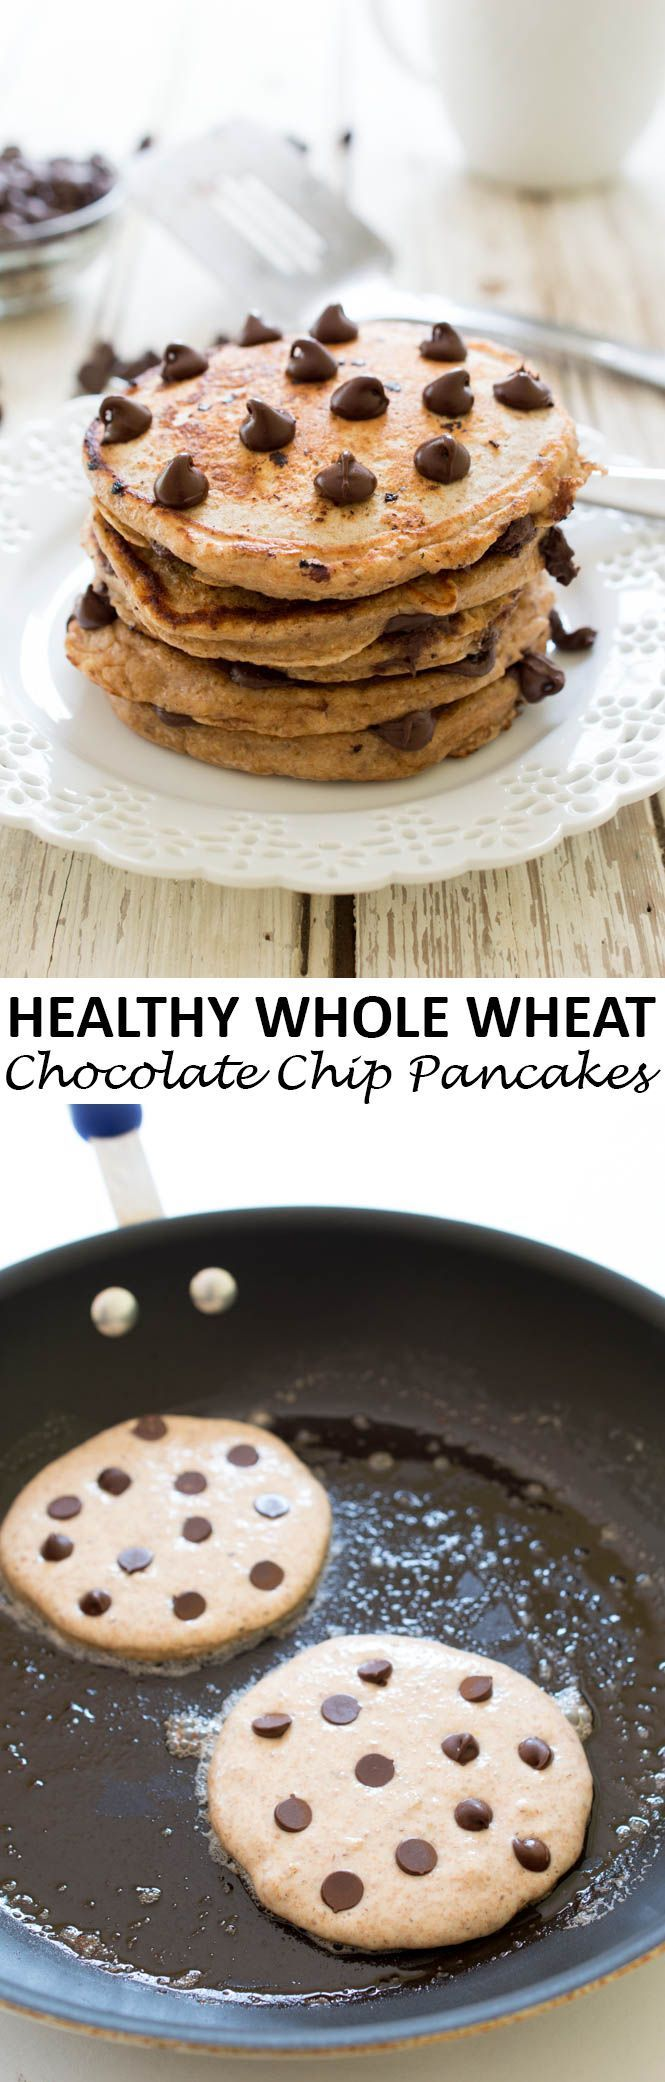 Healthy Whole Wheat Chocolate Chip Pancakes. Made with Greek Yogurt, whole wheat flour and semi-sweet chocolate chips. A healthy and satisfying breakfast! | chefsavvy.com #recipe #pancakes #breakfast #healthy #whole #wheat #chocolate